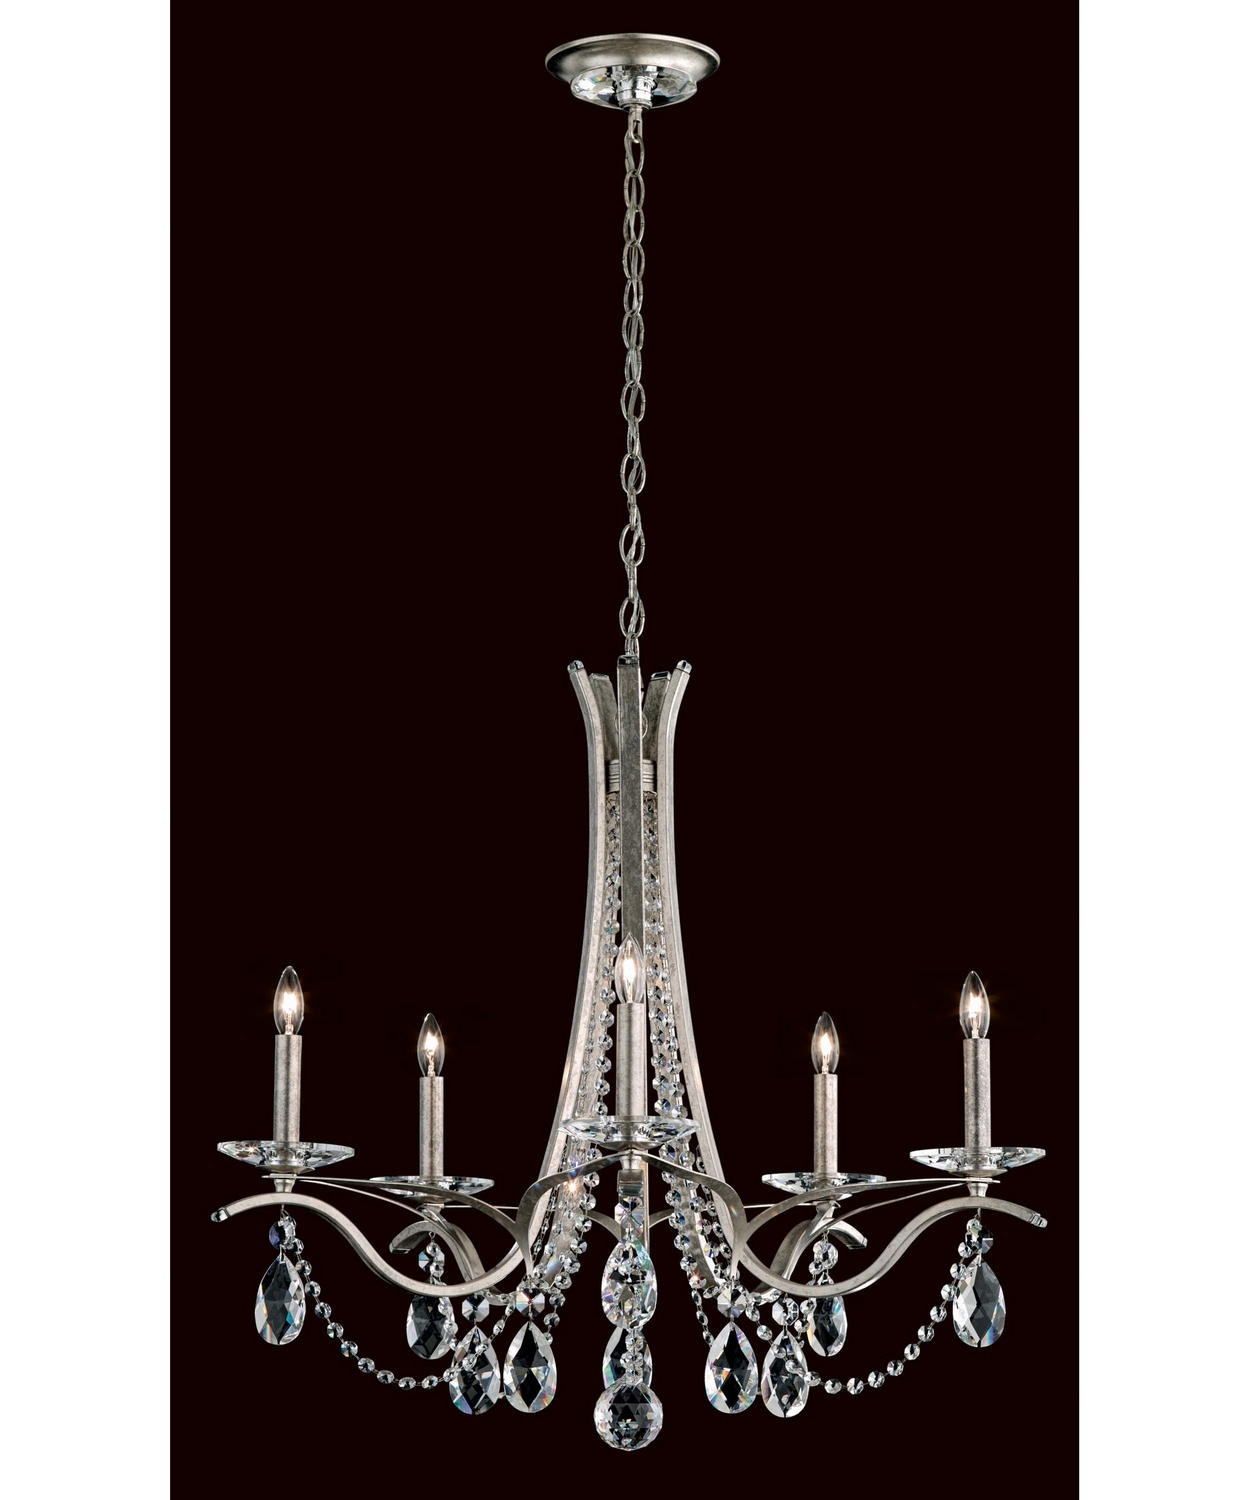 Schonbek Vesca 5-Light Chandelier